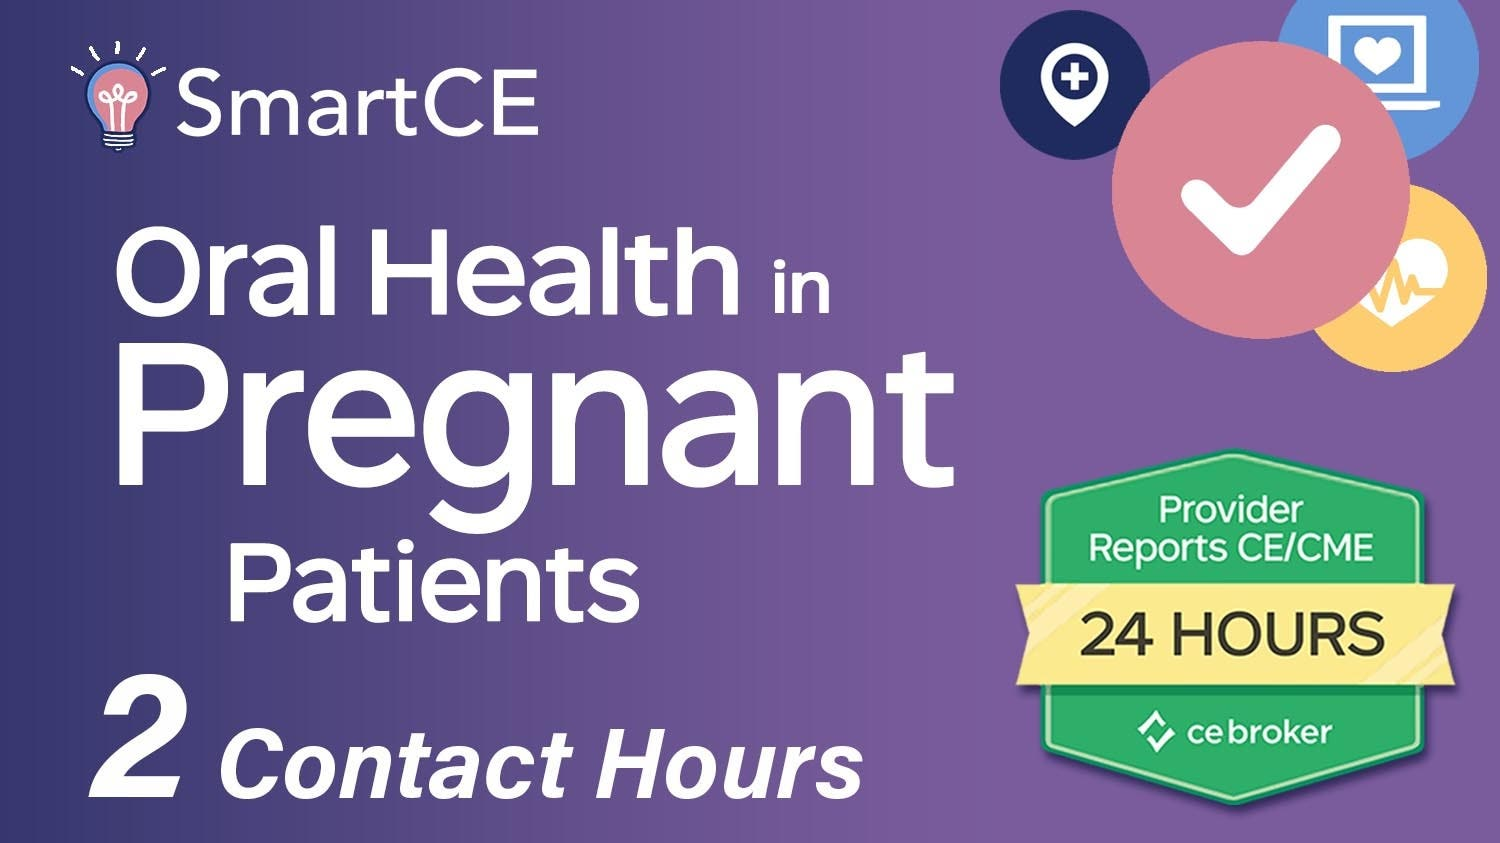 Oral Health for Pregnant Patients - 2 Contact Hours /20-685267